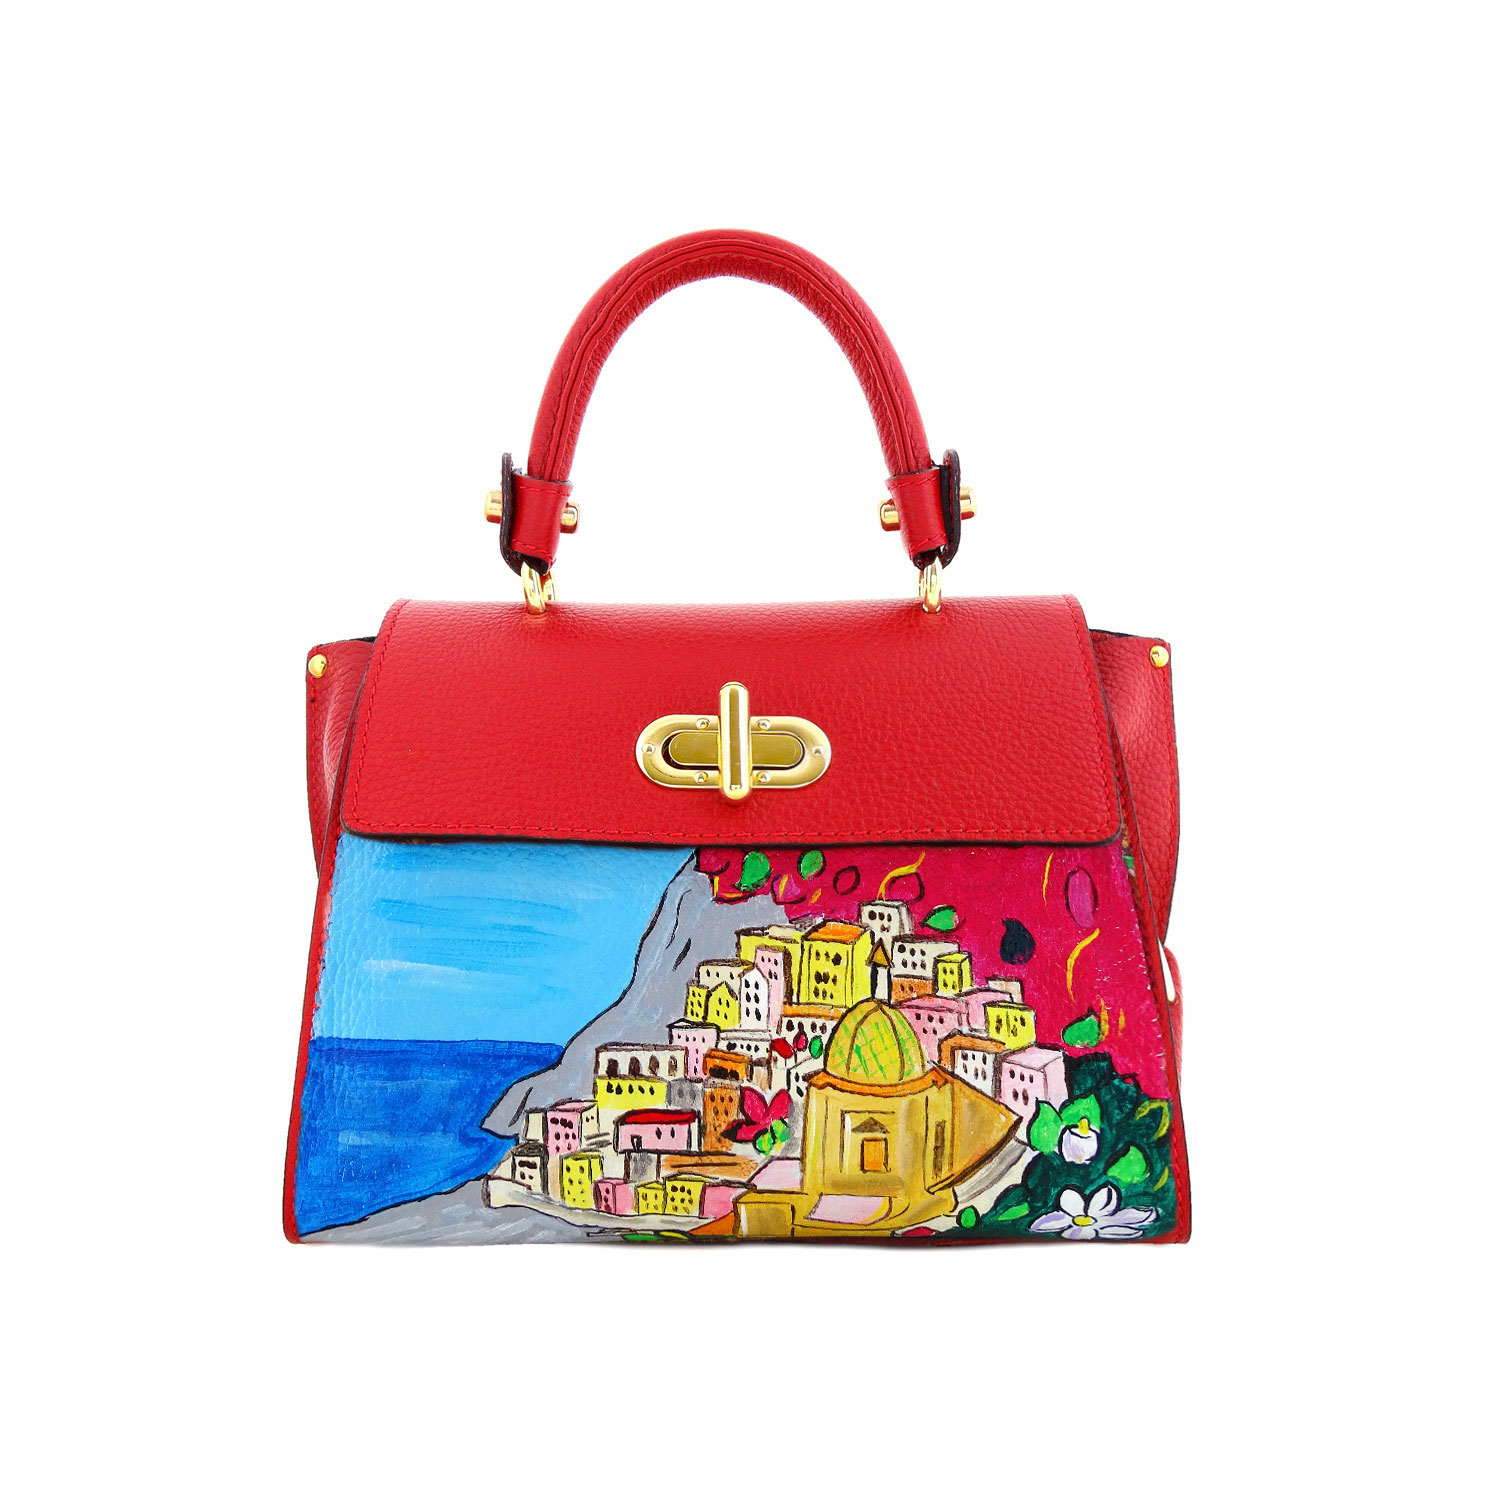 Handpainted bag - Positano